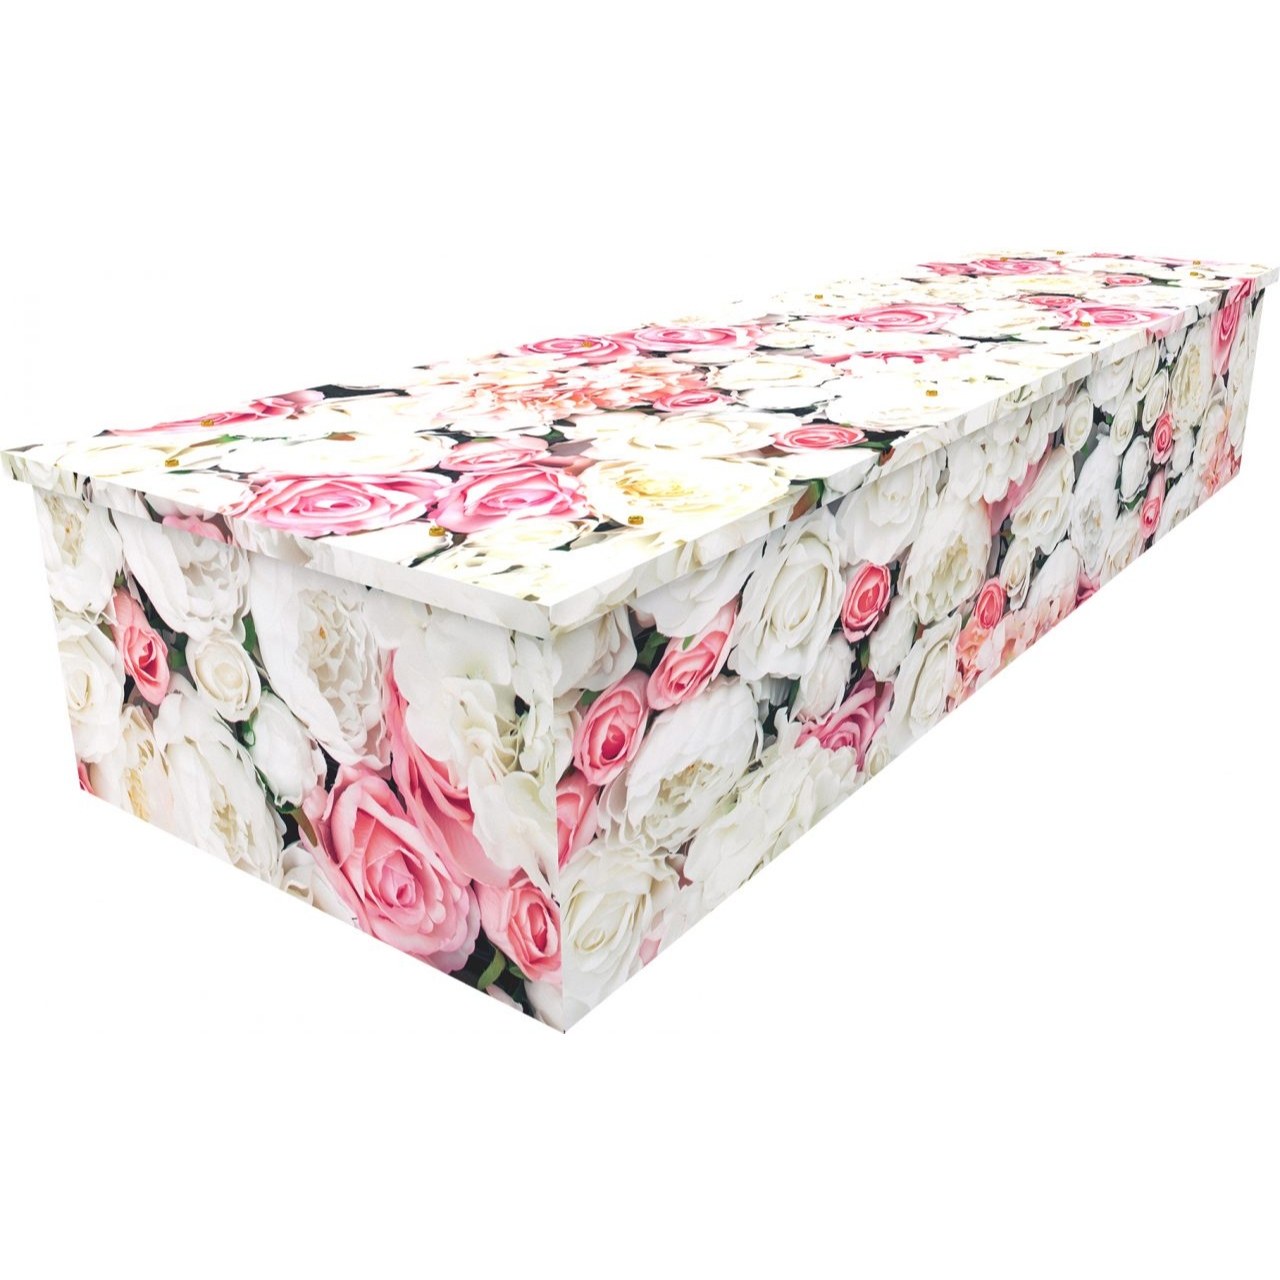 Pink Rose Wall Cardboard Coffin